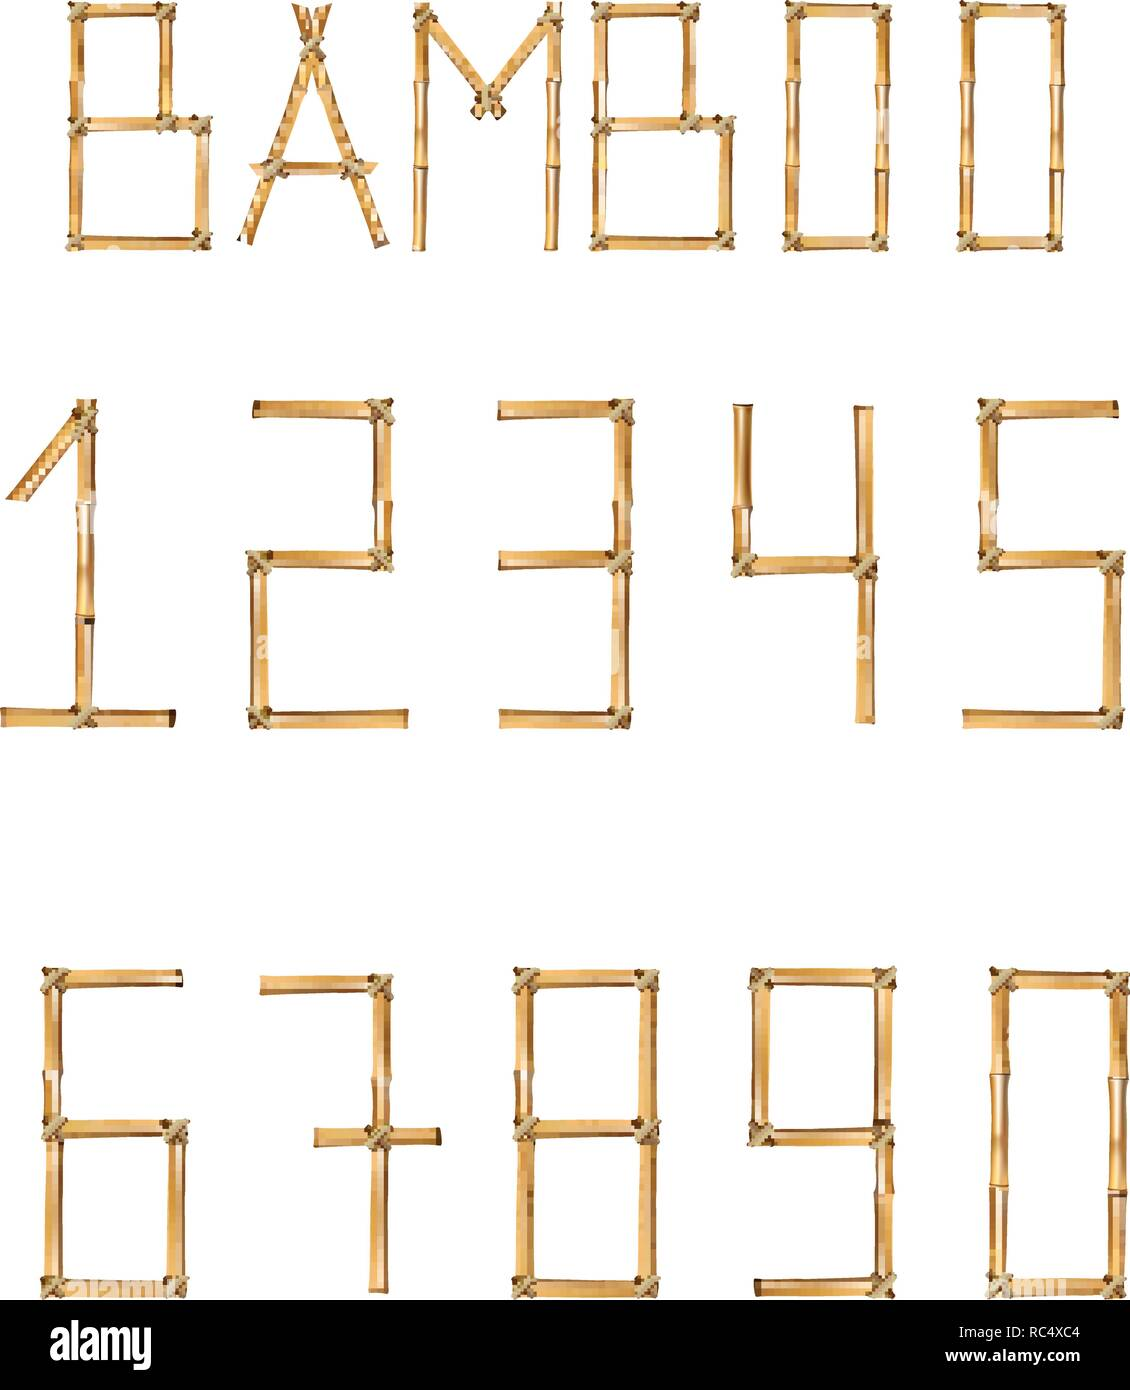 Vector bamboo numerals digits made of realistic brown dry bamboo poles isolated on white background. Numbers concept for creating words, text, adverti - Stock Image